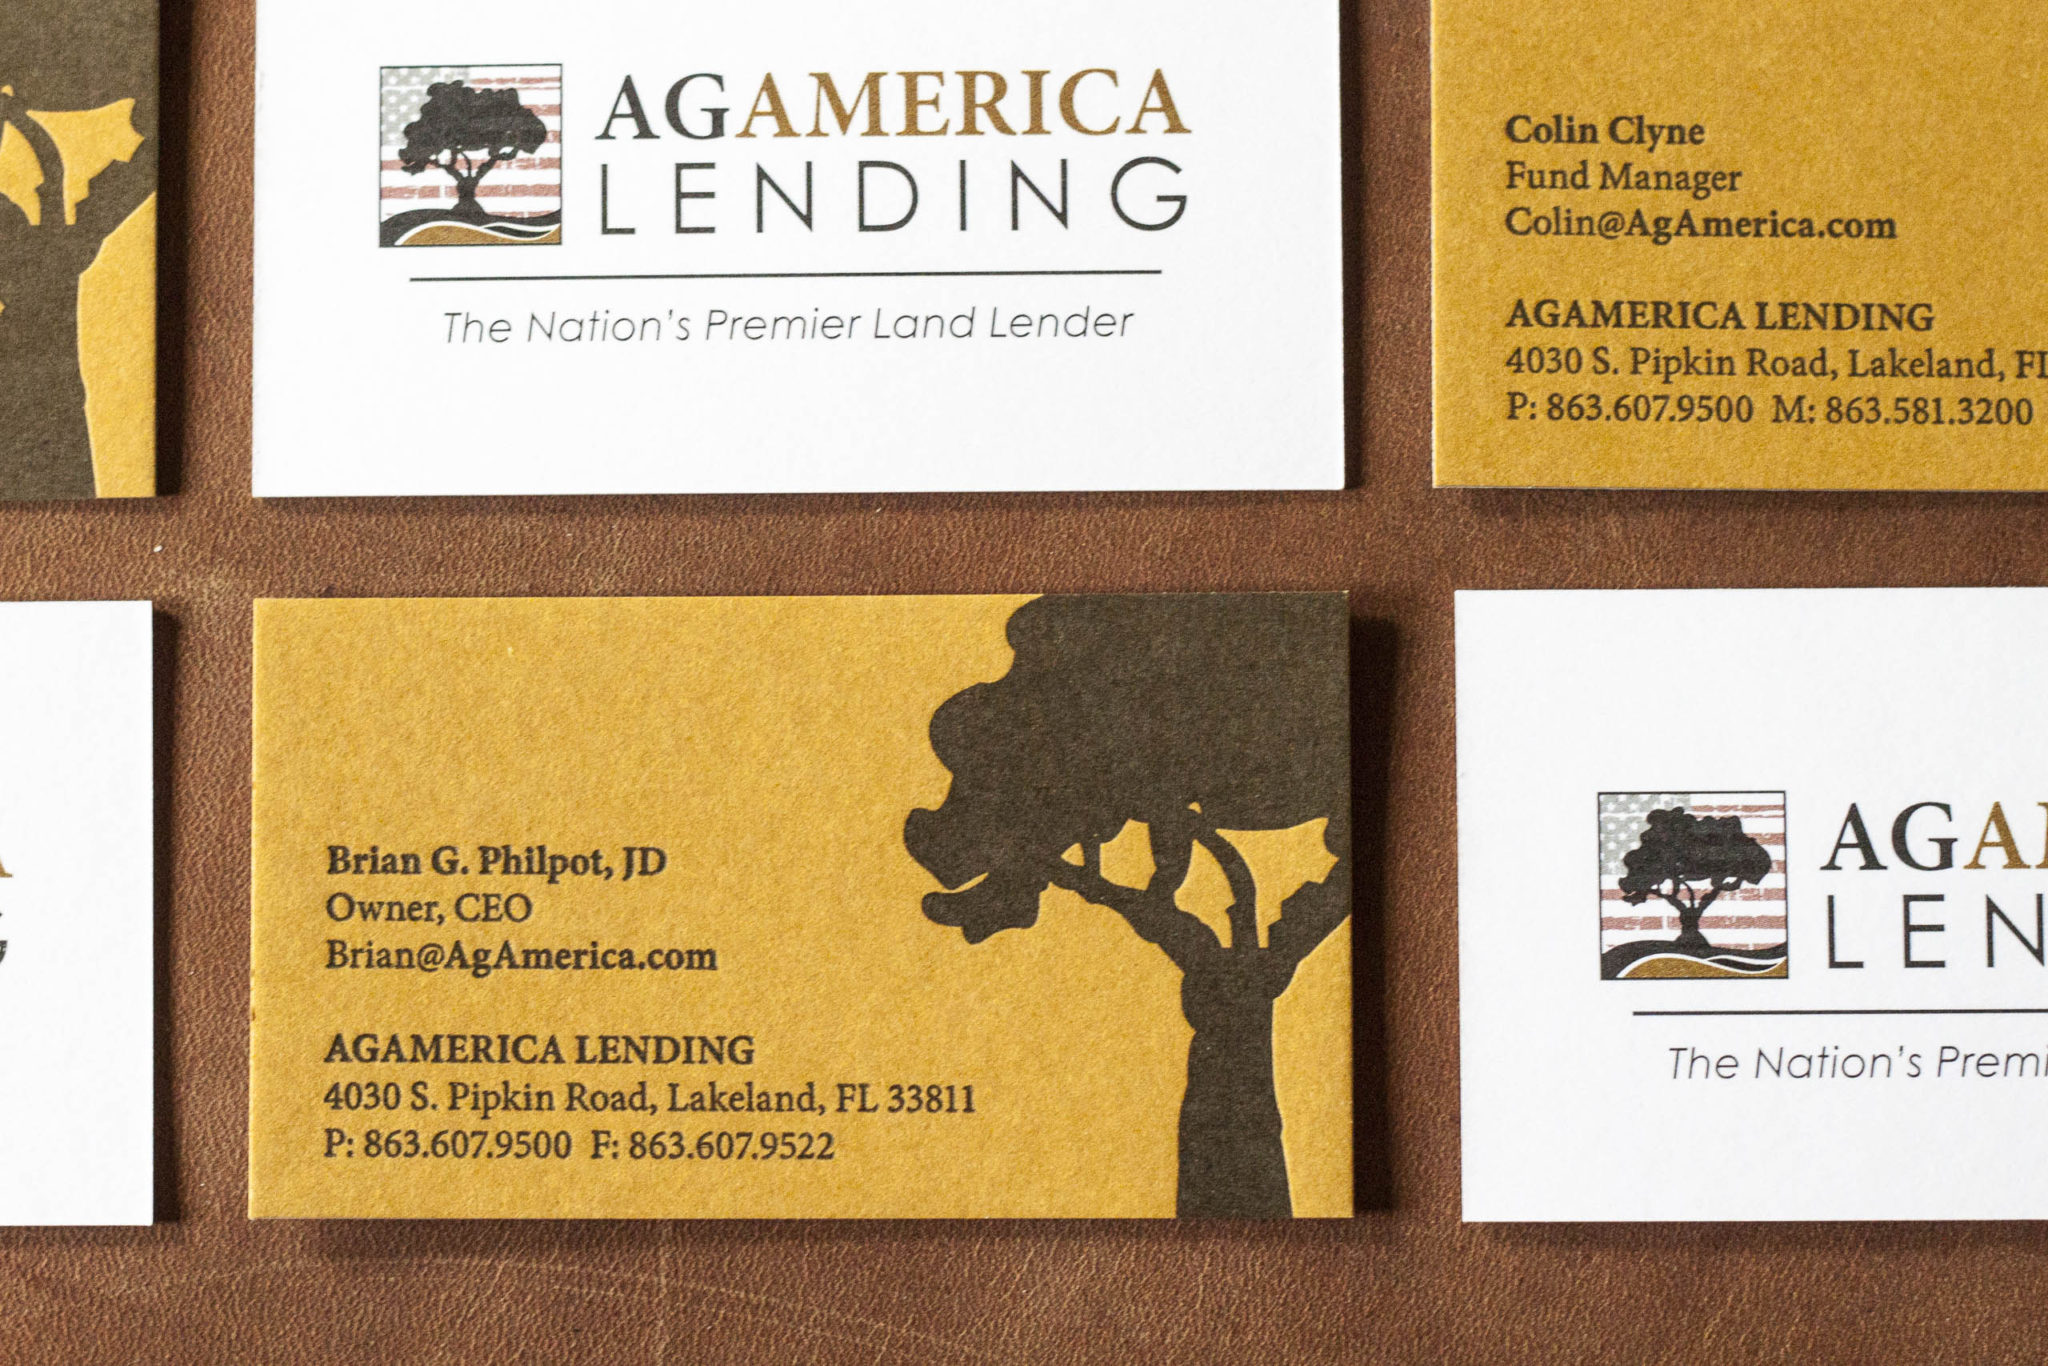 Luxury Agricultural Business Cards-7